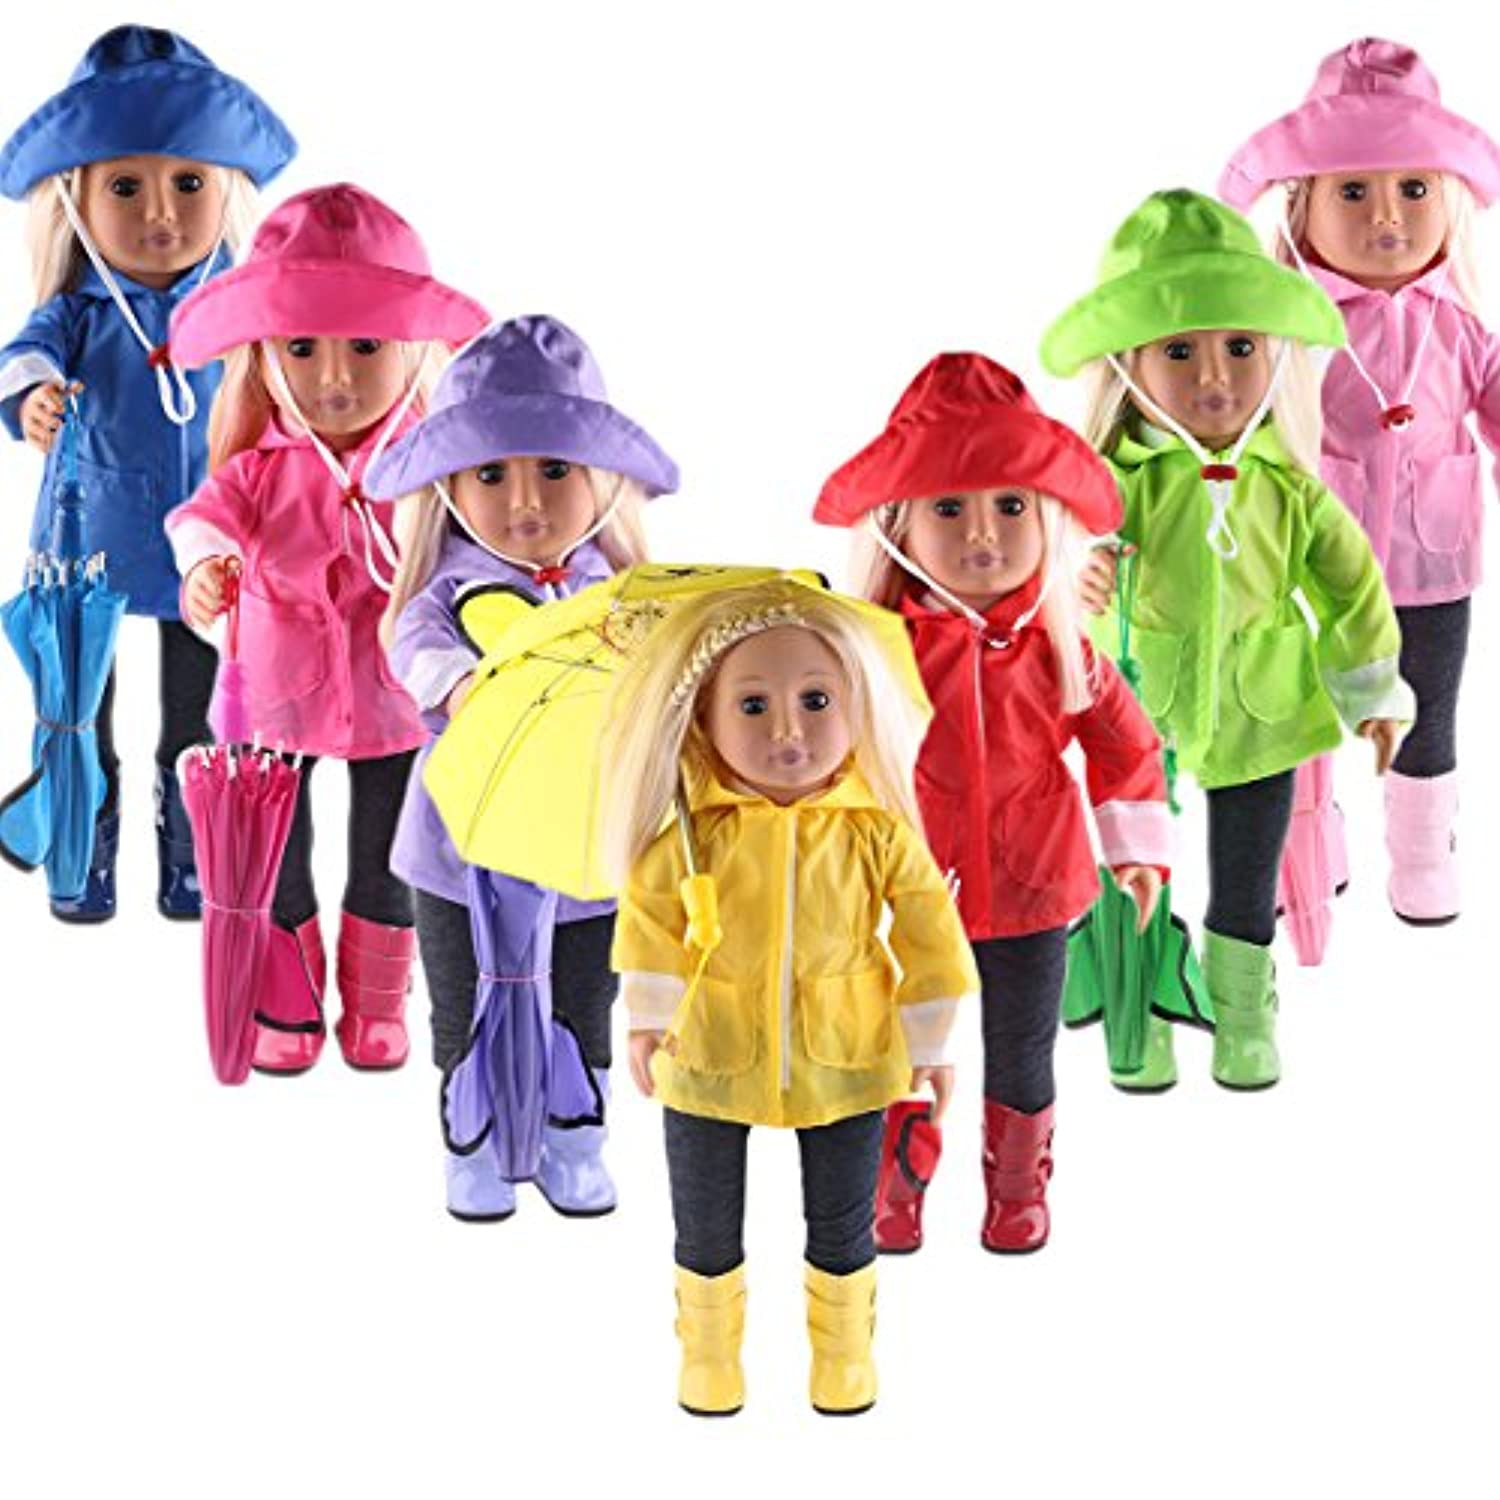 ZWSISU Doll Clothes Blue Rain Outfits Accessories for 18 inch American Girl Dolls Package Includes Rain Jacket,